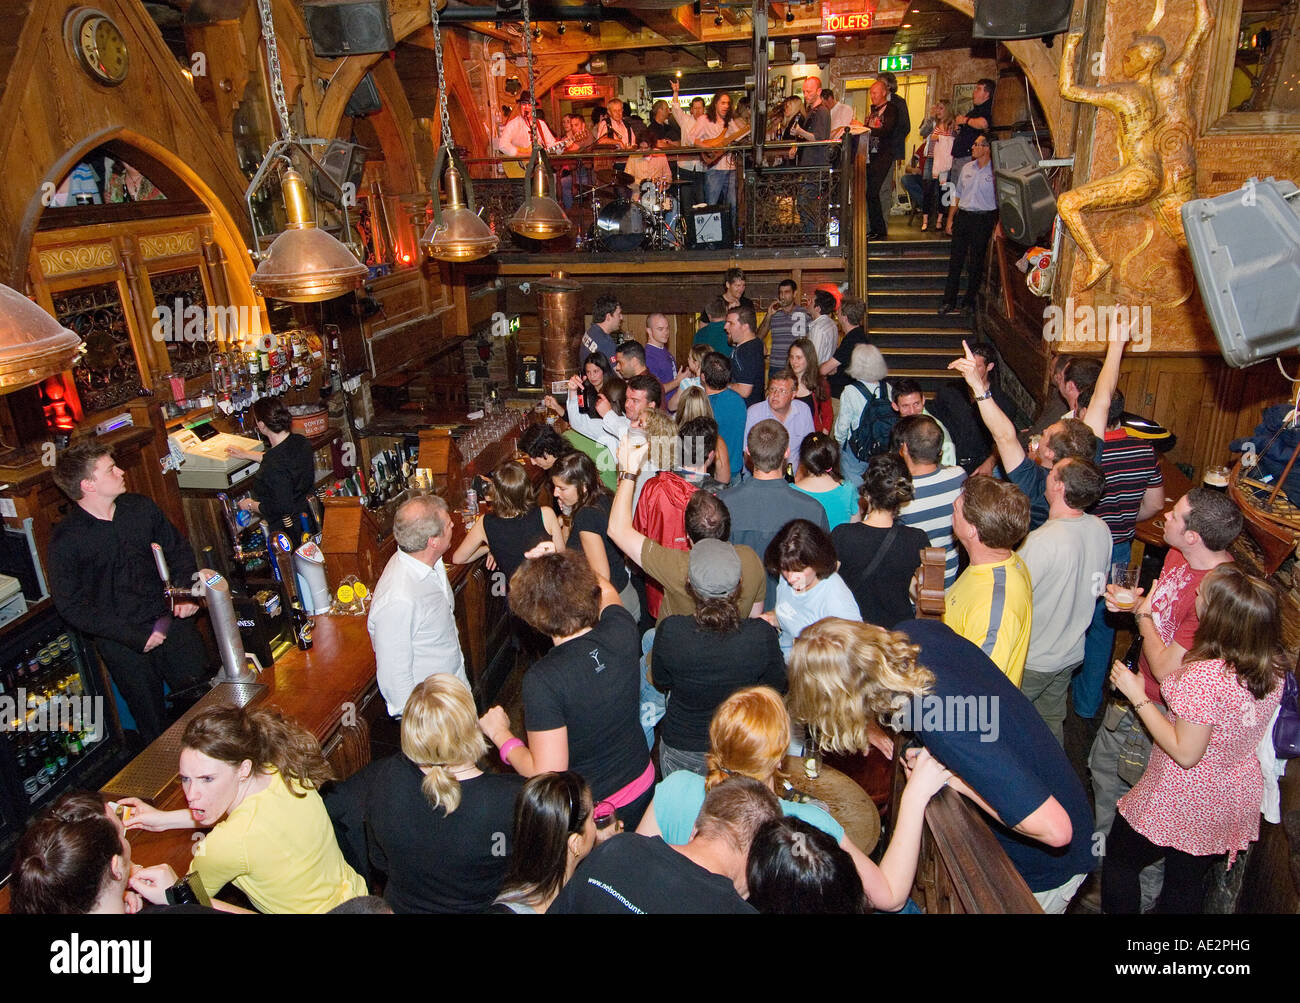 Party time and live music downstairs at The Quais pub on Quay Street in Galway city's lively Spanish Arch district. - Stock Image